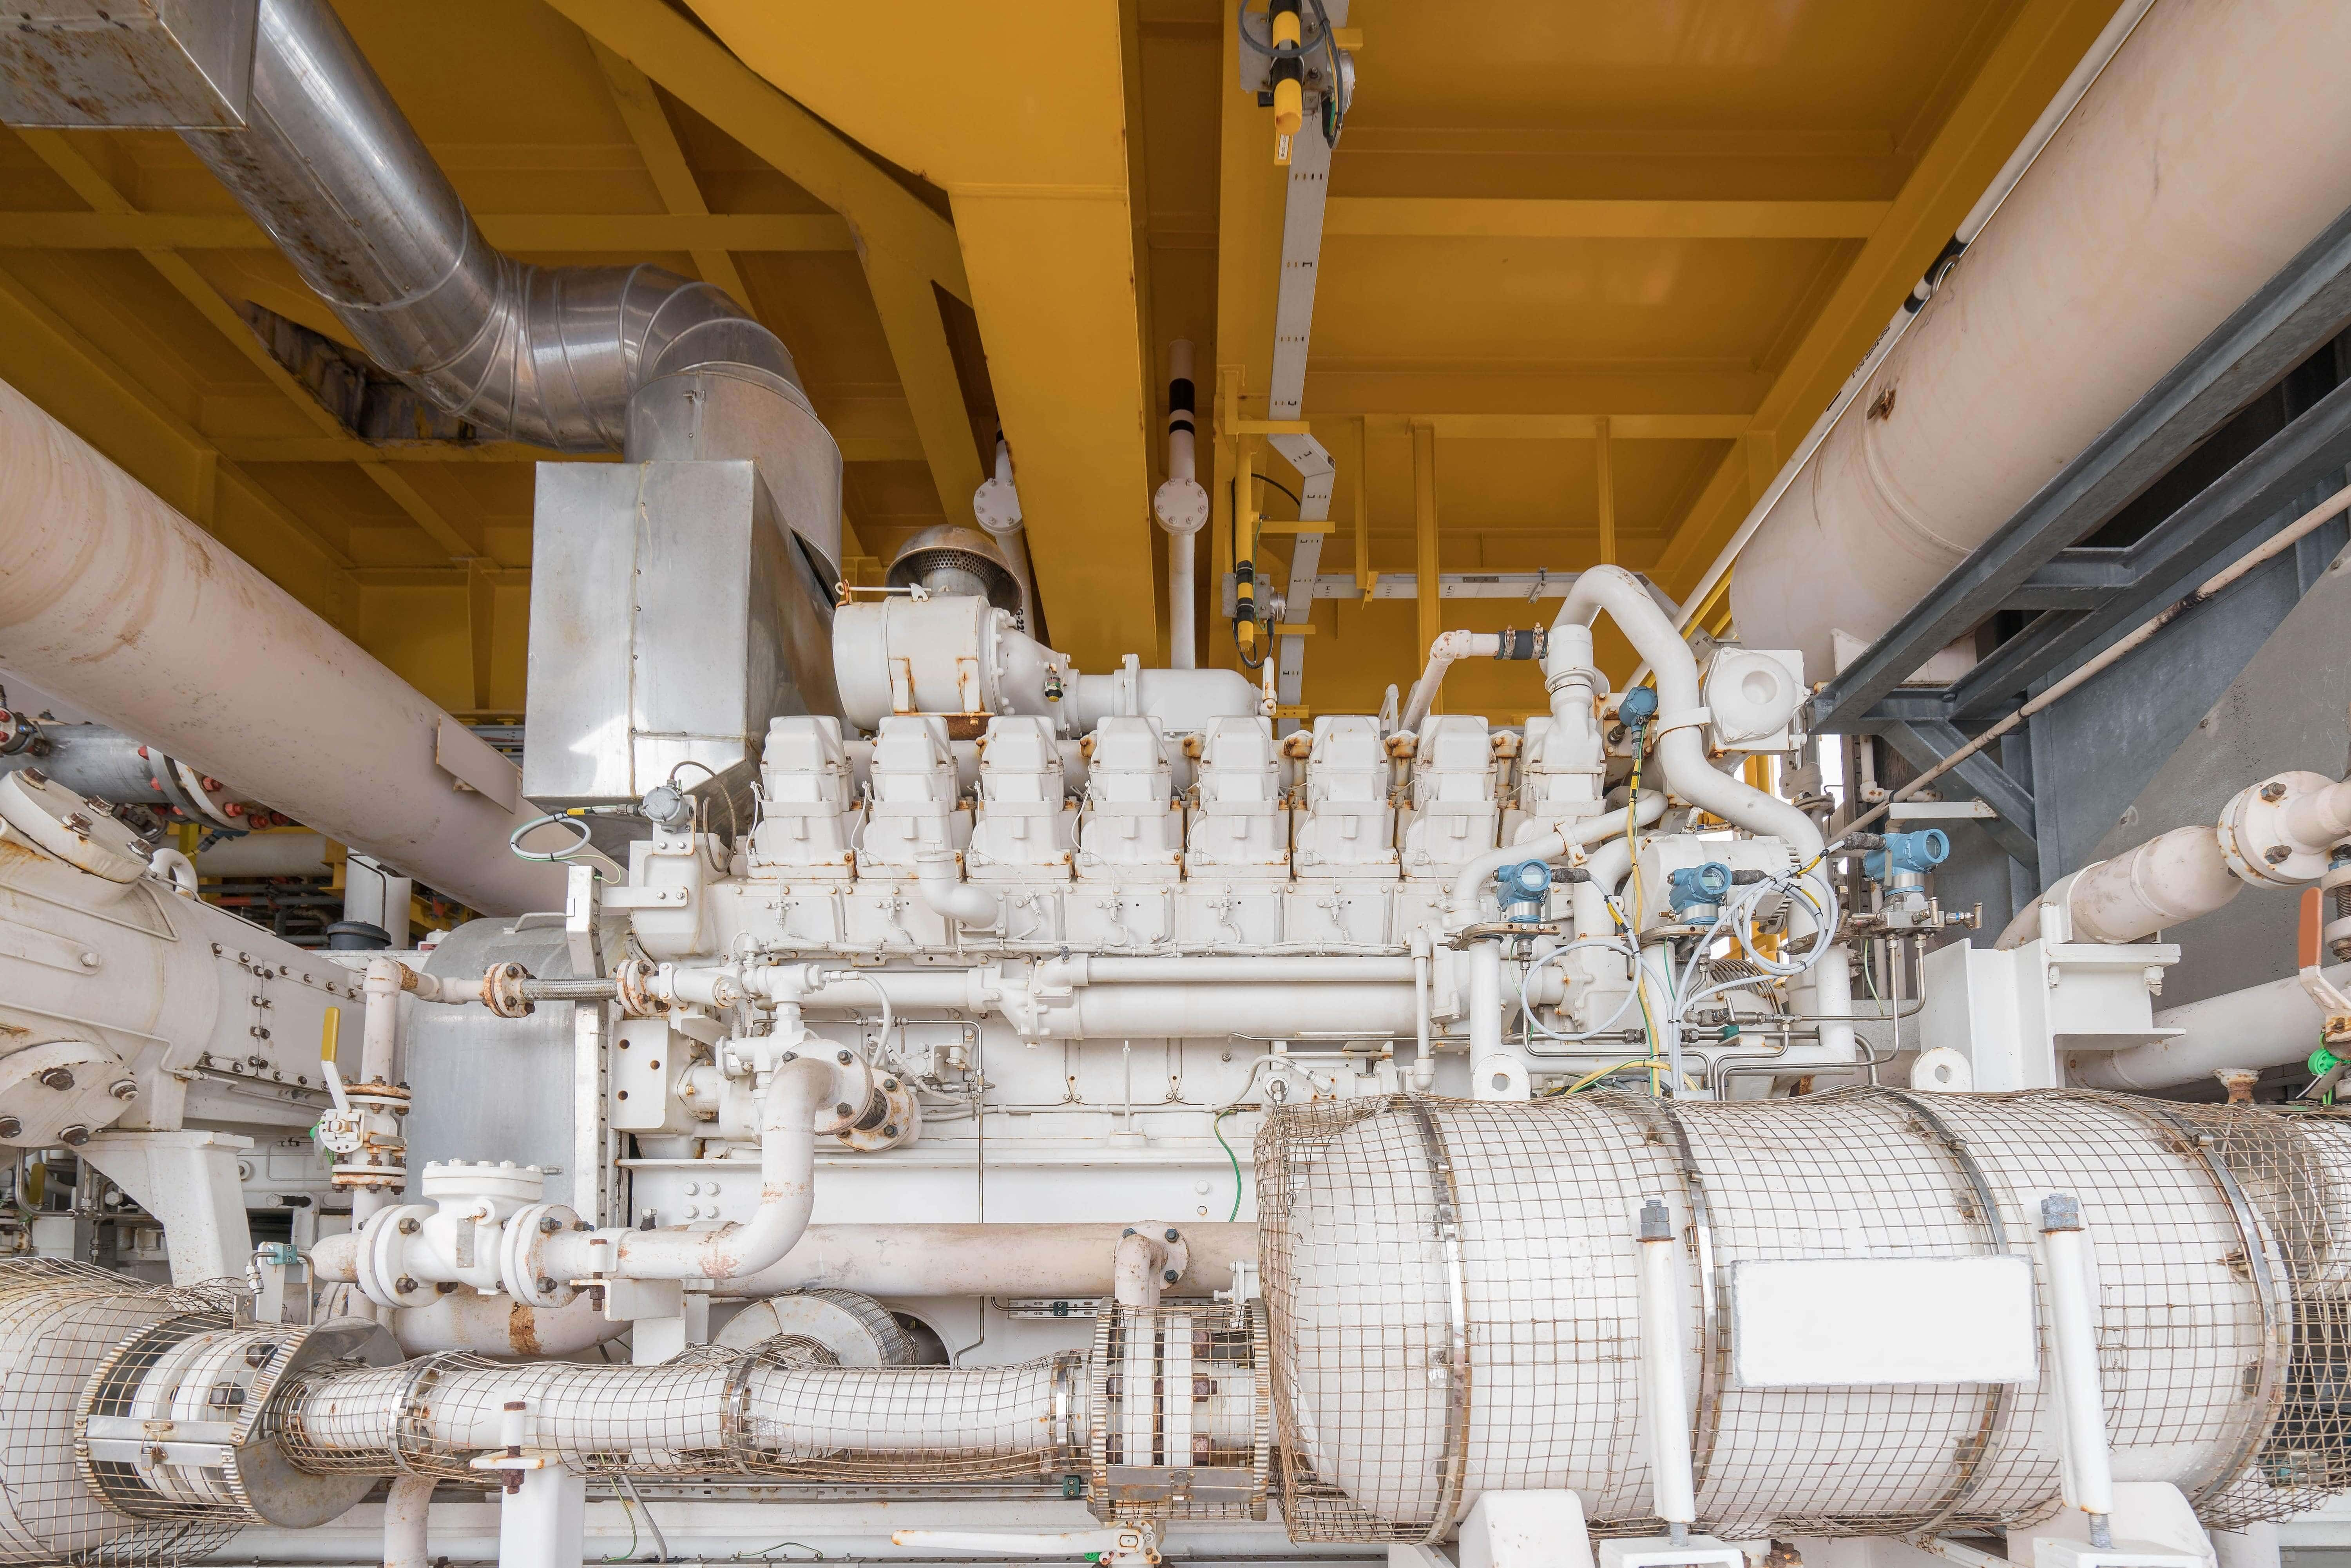 Amp Up the Pressure through Natural Gas Booster Systems